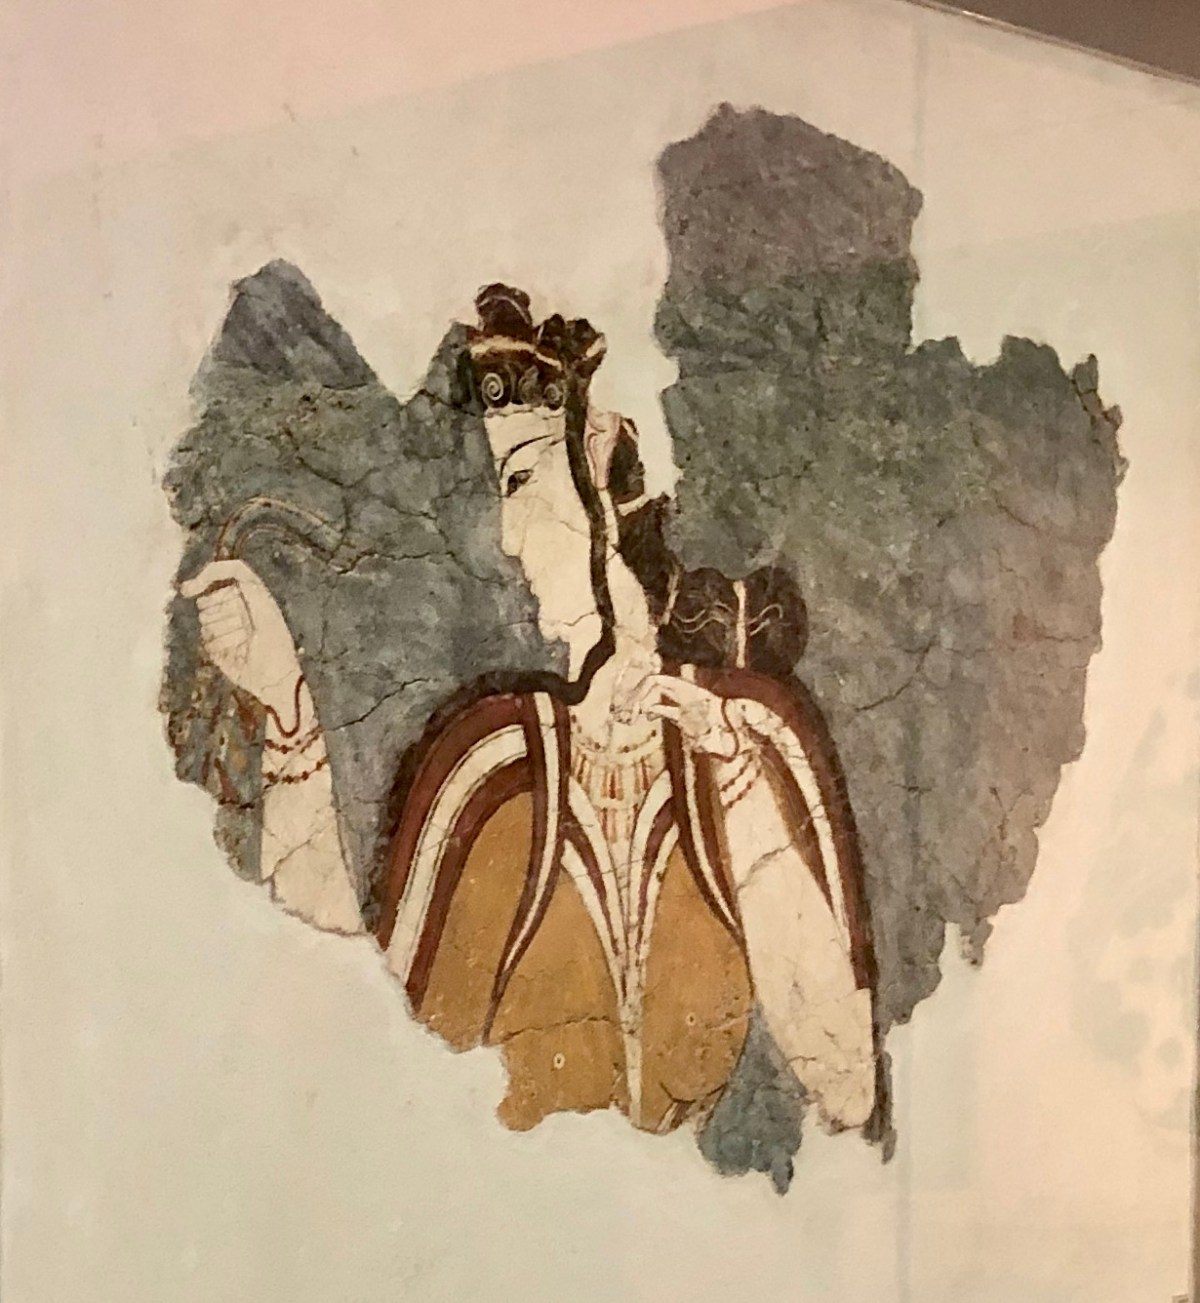 A trip to the Archeological Museum in Athens. 9/27/21